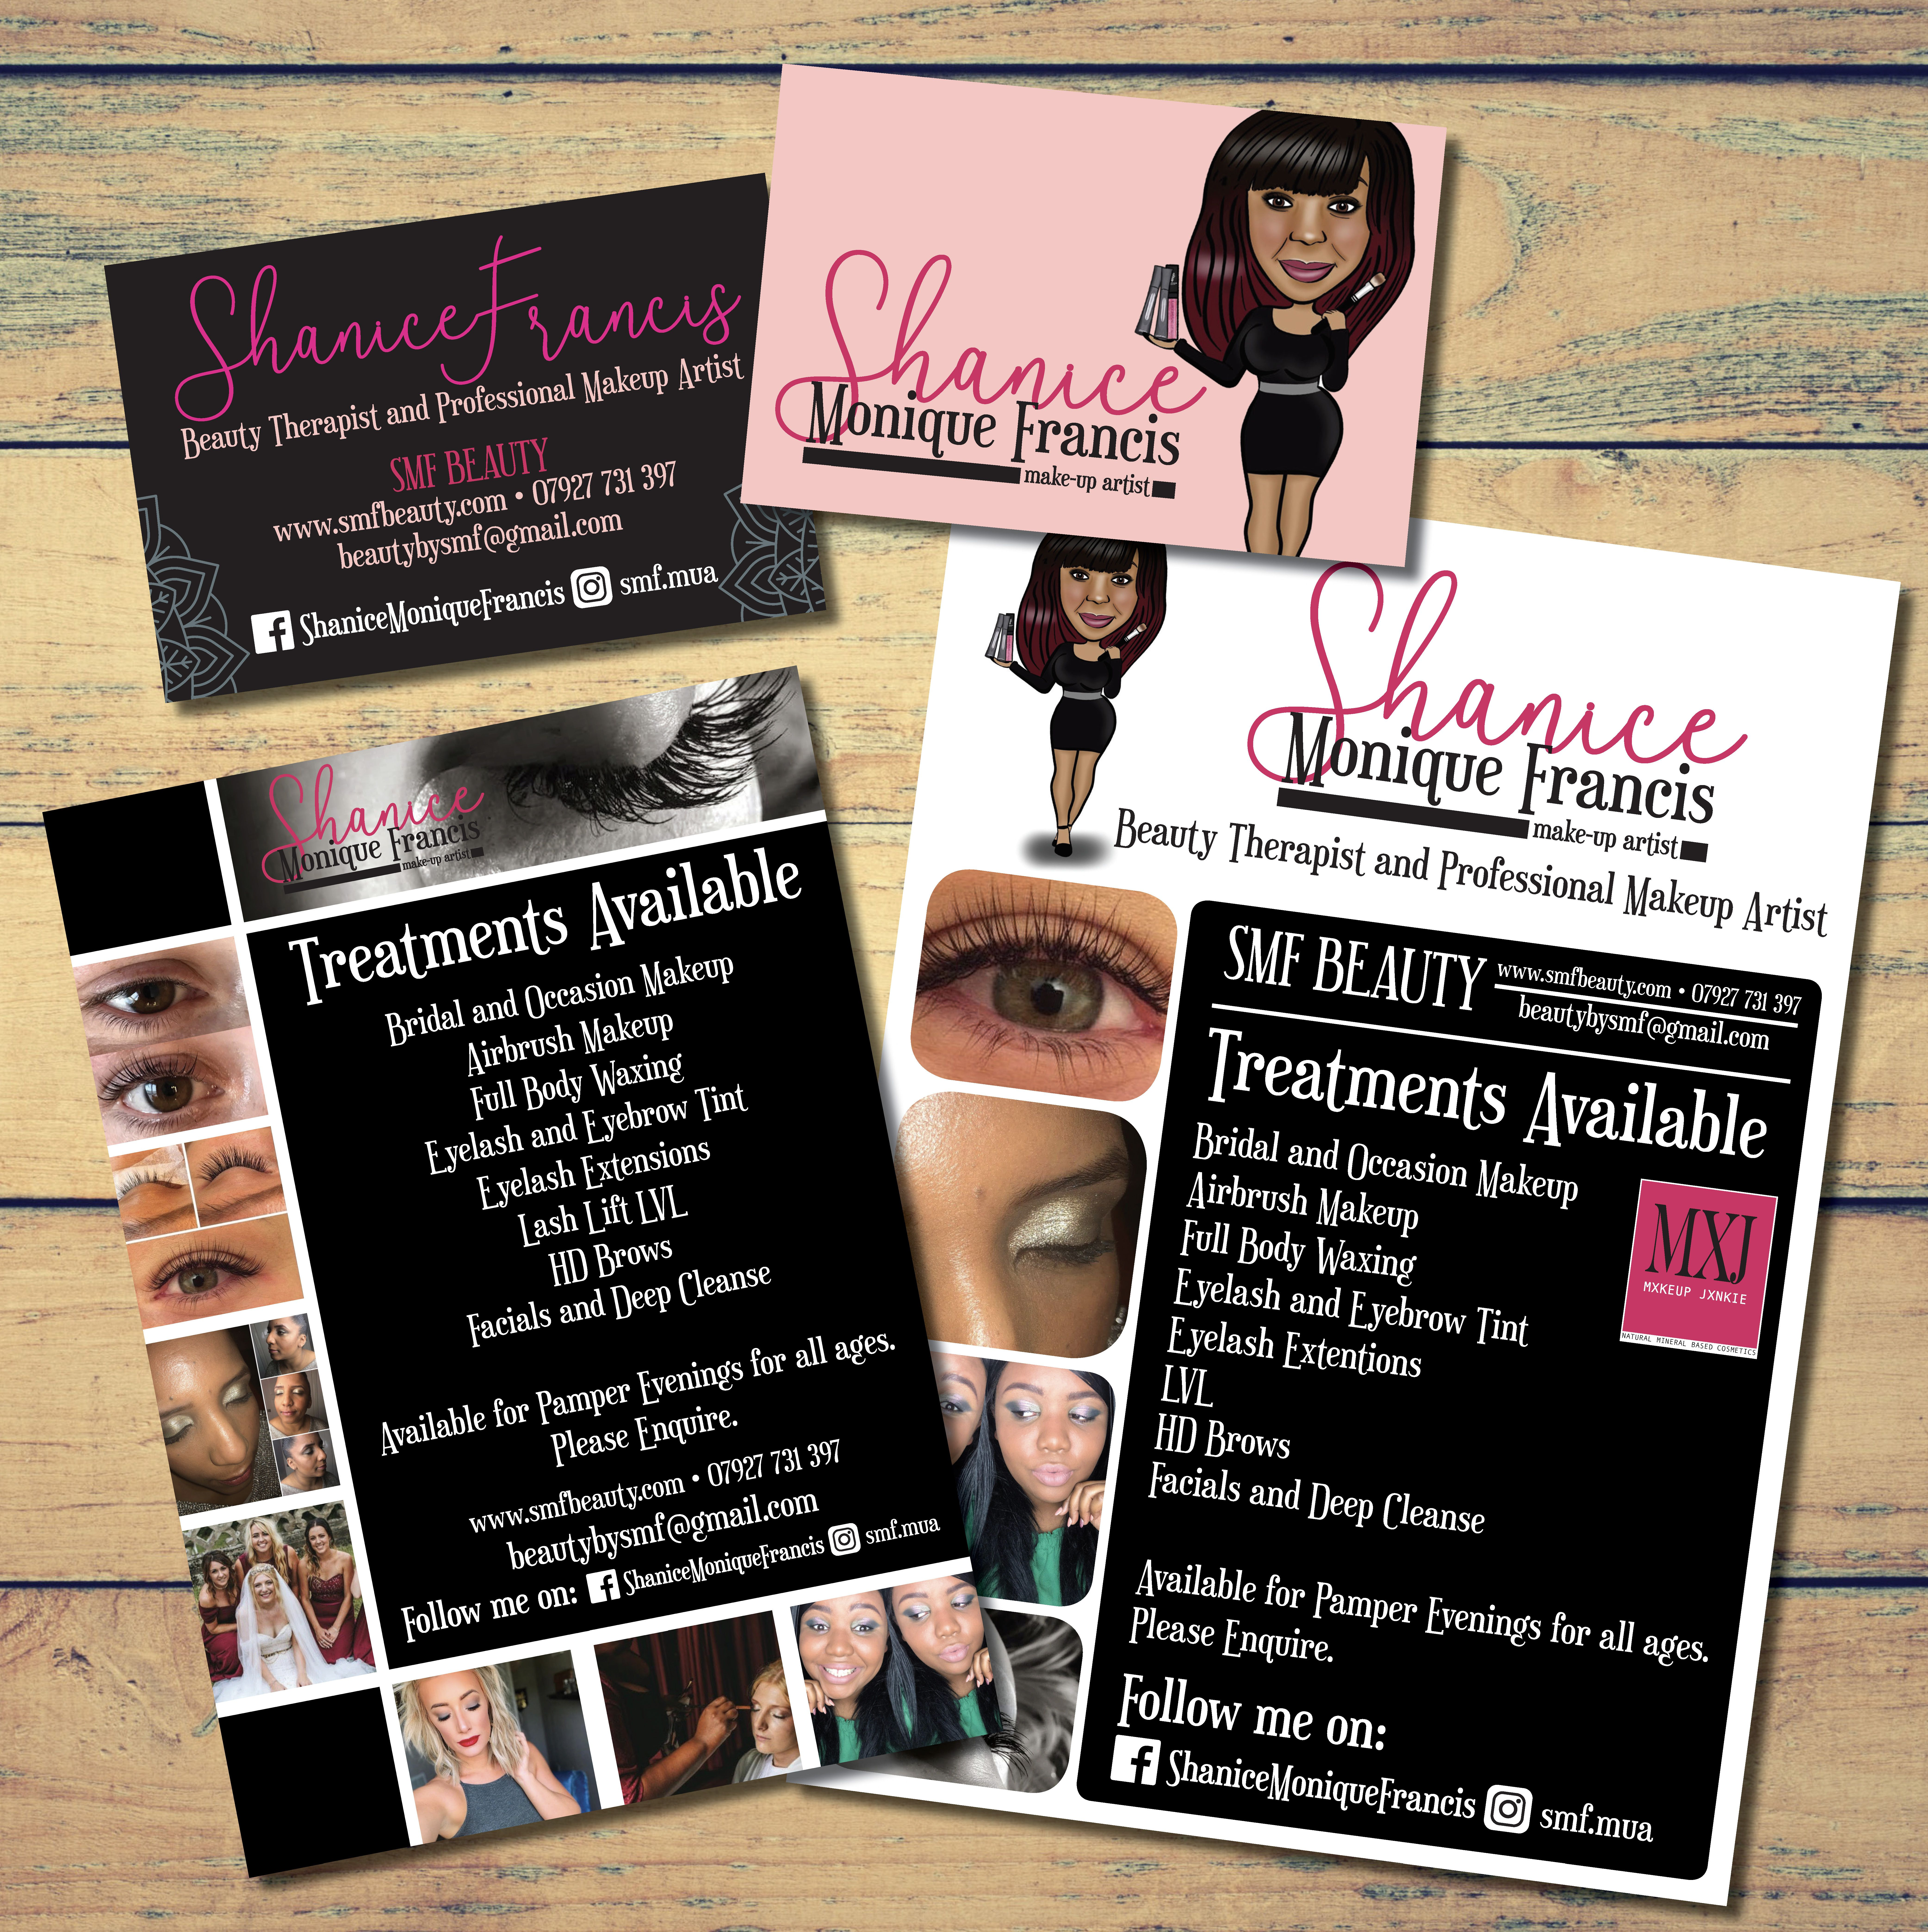 Business Cards Leaflets And Posters For Shanice Monique Francis Make Up Artist Beauty Therapist Body Waxing Professional Makeup Artist